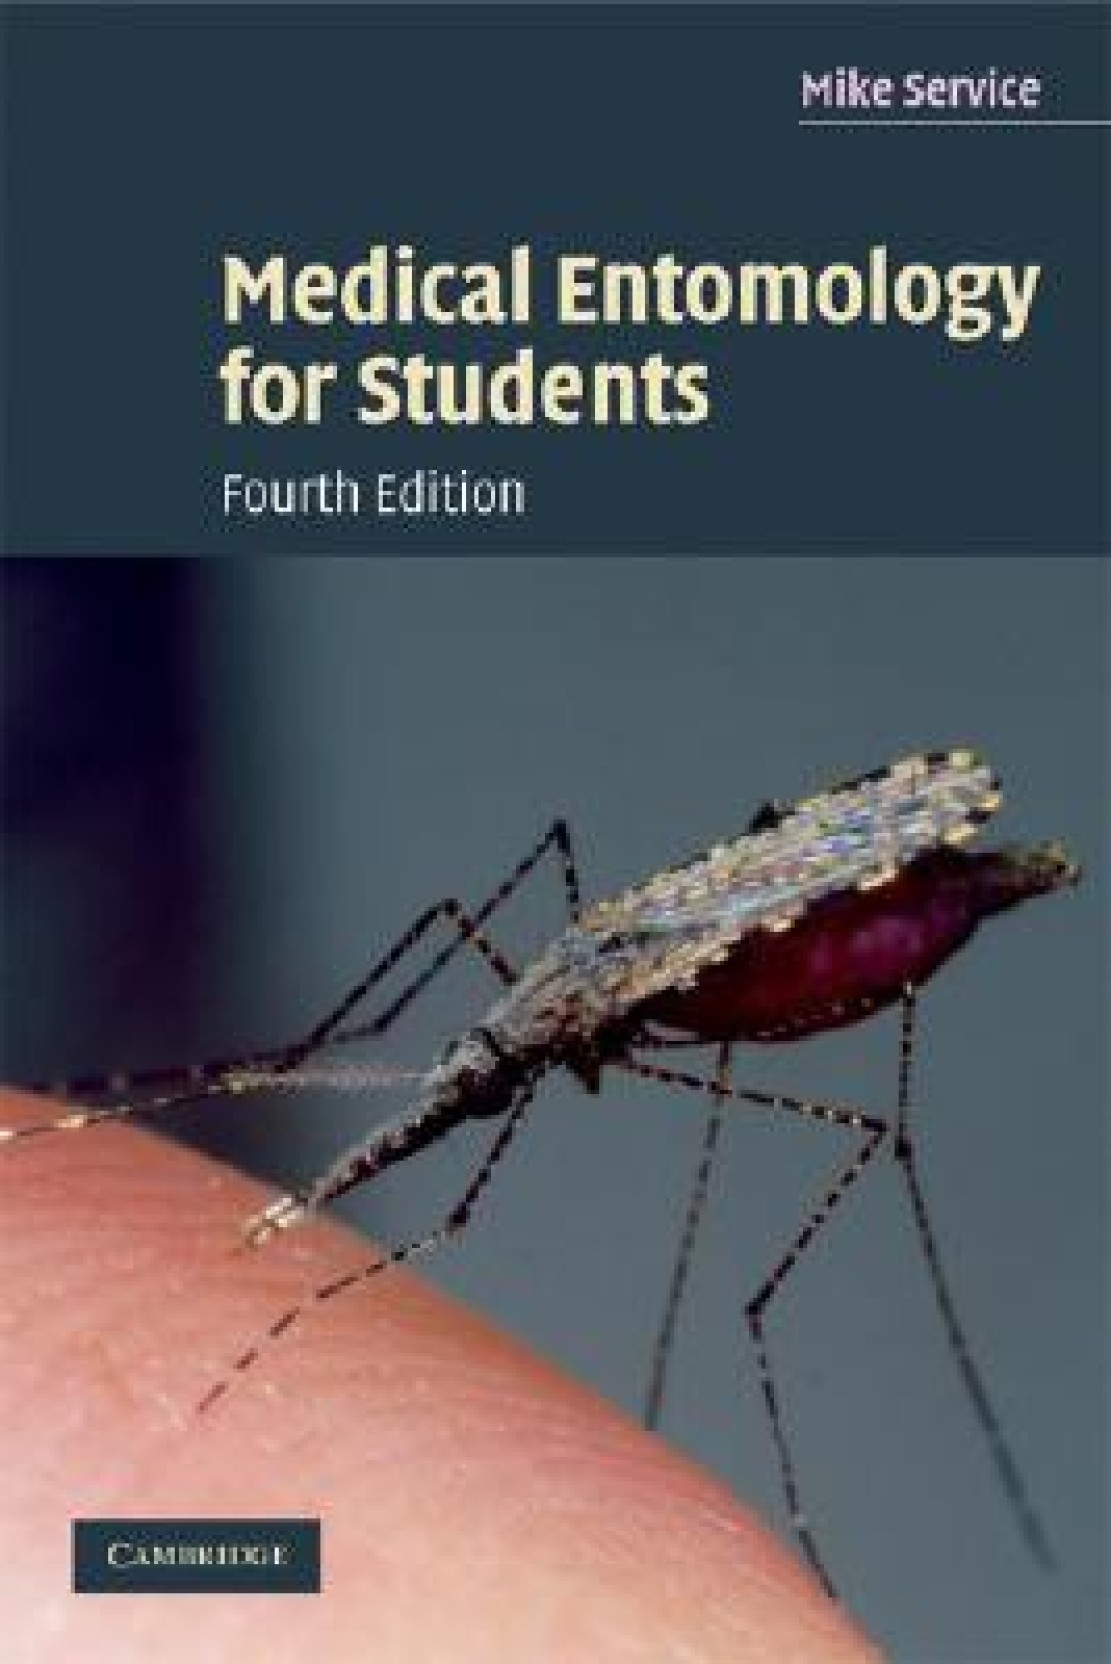 MEDICAL ENTOMOLOGY FOR STUDENTS 4/ED Fourth edition Edition. Share